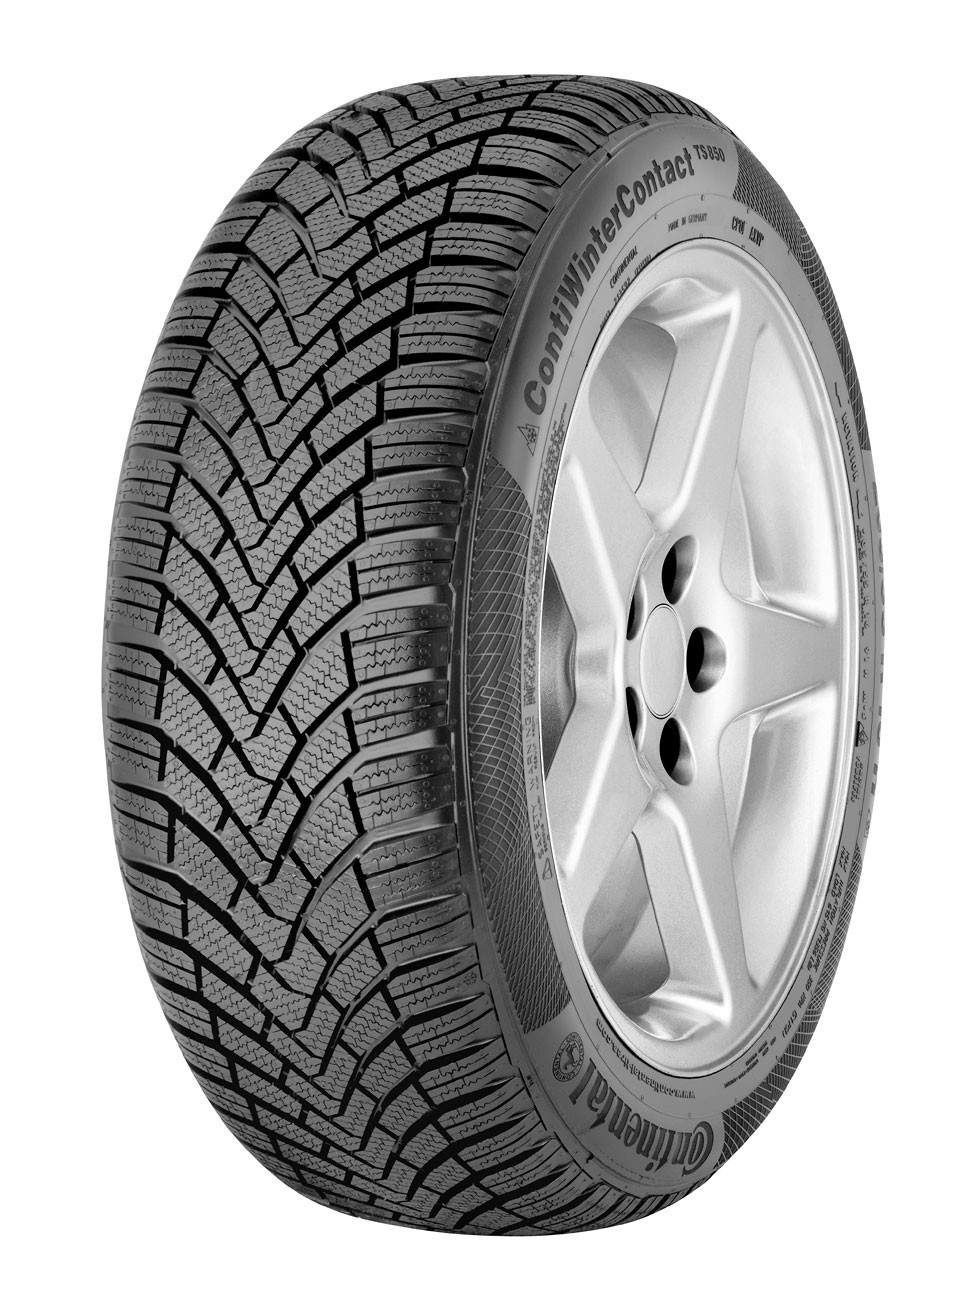 Anvelopa Iarna 155/65R14 75T Continental Winter Contact Ts 850